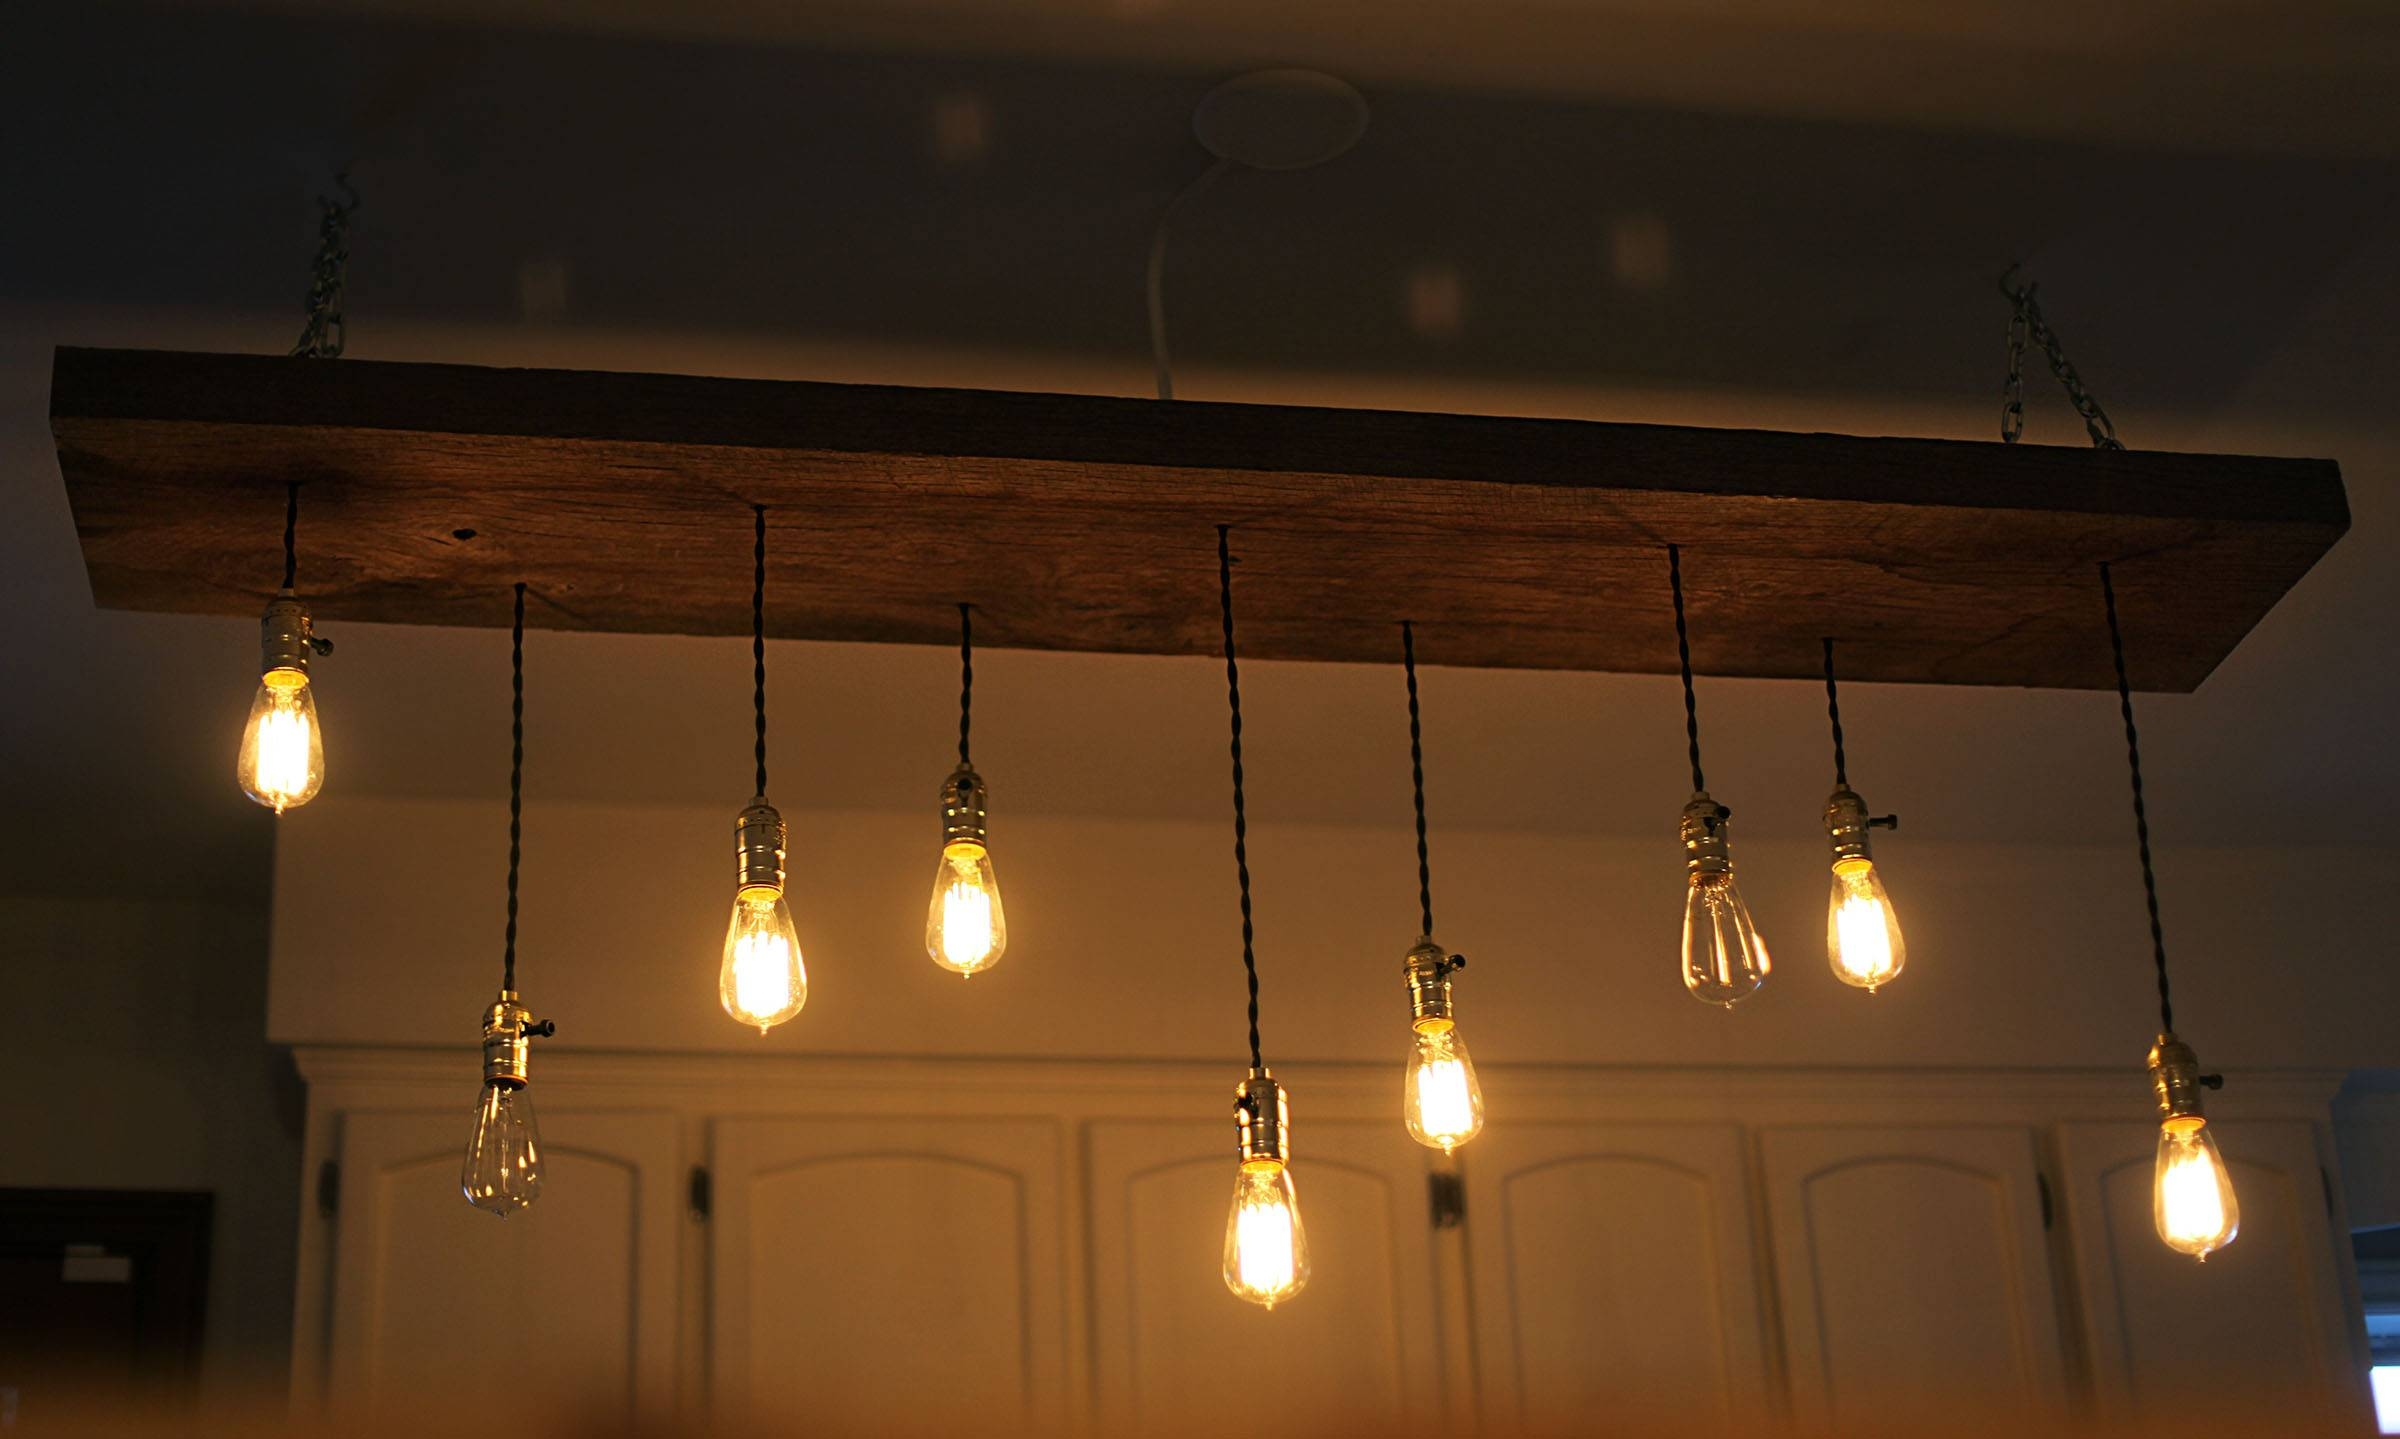 Diy Reclaimed Lumber Hanging Edison Bulb Chandelier | Unmaintained with regard to Hanging Lights Fixtures (Image 2 of 15)